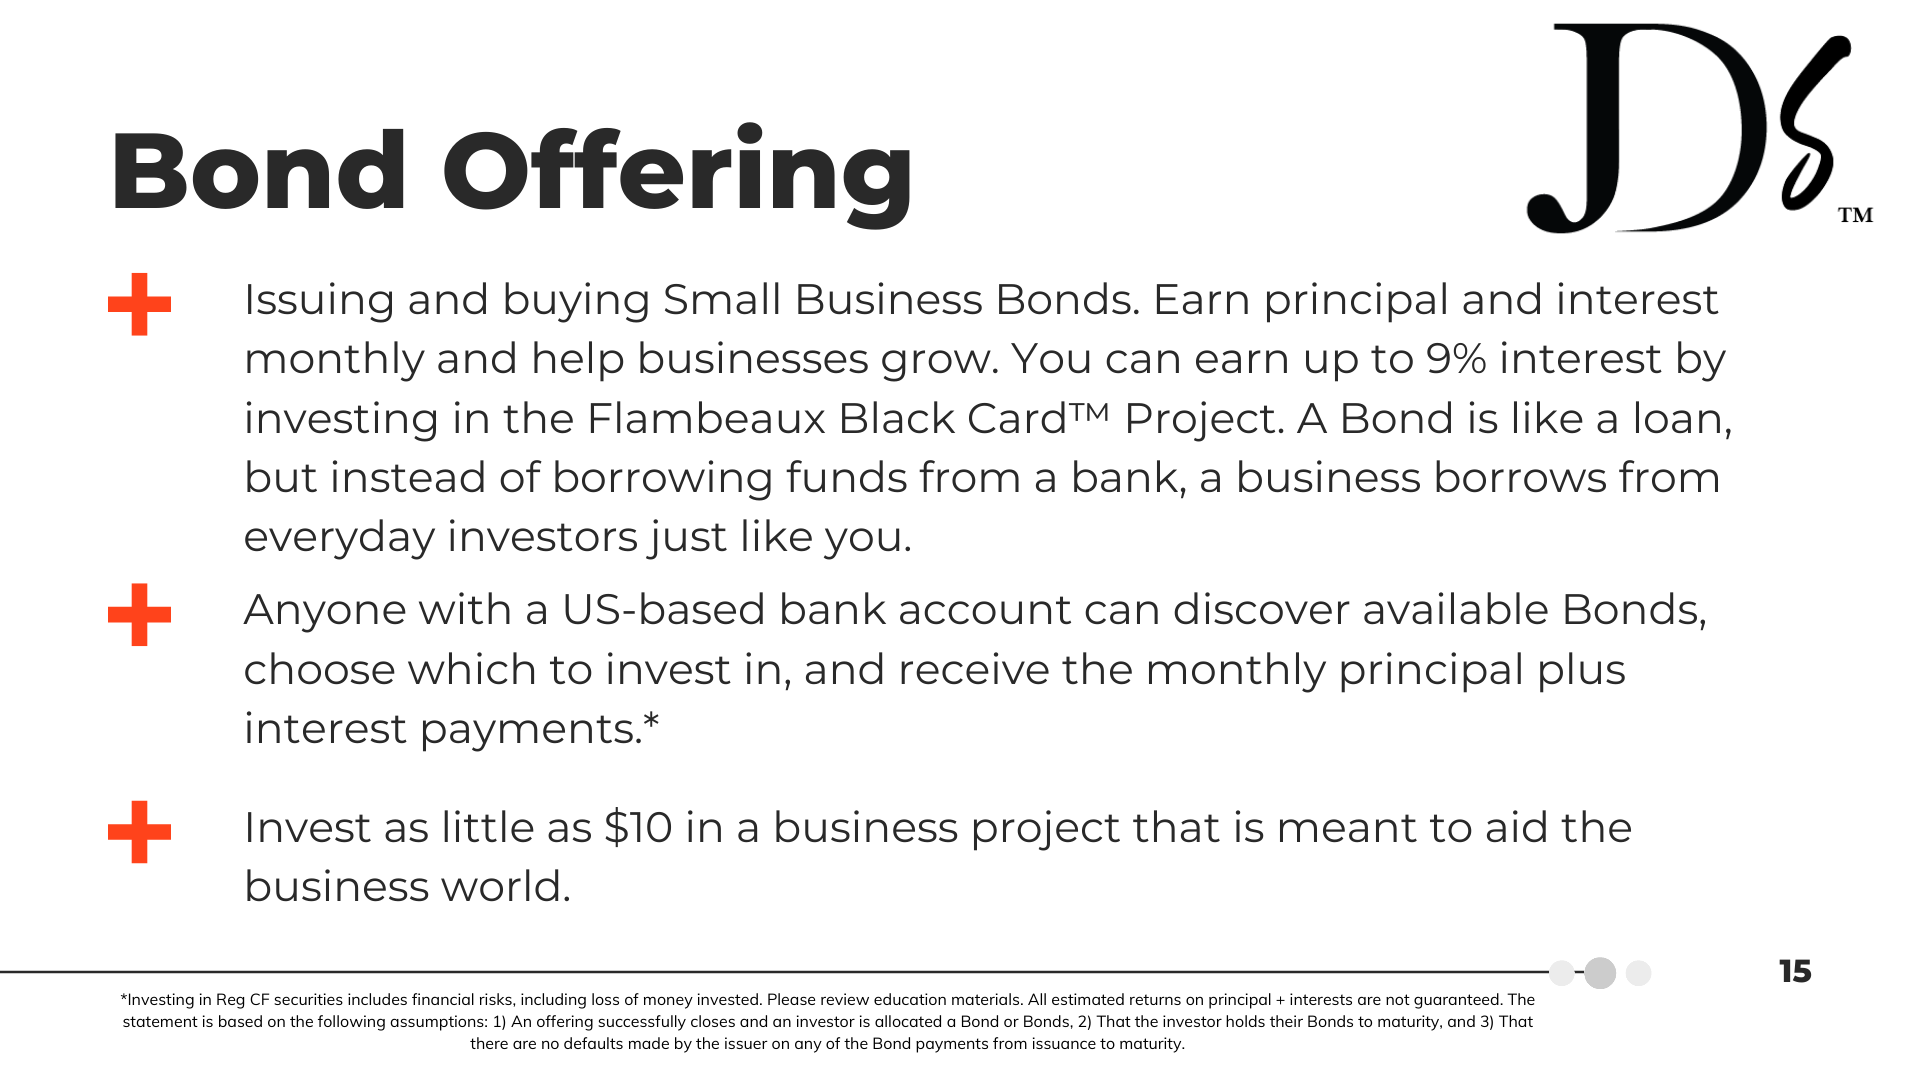 Bond Offering | Issuing and buying Small Business Bonds. Earn principal and interest monthly and help businesses grow. You can earn up to 9% interest by investing in the Flambeaux Black Card™ Project. A Bond is like a loan, but instead of borrowing funds from a bank, a business borrows from everyday investors just like you. | Anyone with a US-based bank account can discover available Bonds, choose which to invest in, and receive the monthly principal plus interest payments. | Invest as little as $10 in a business project that is meant to aid the business world.